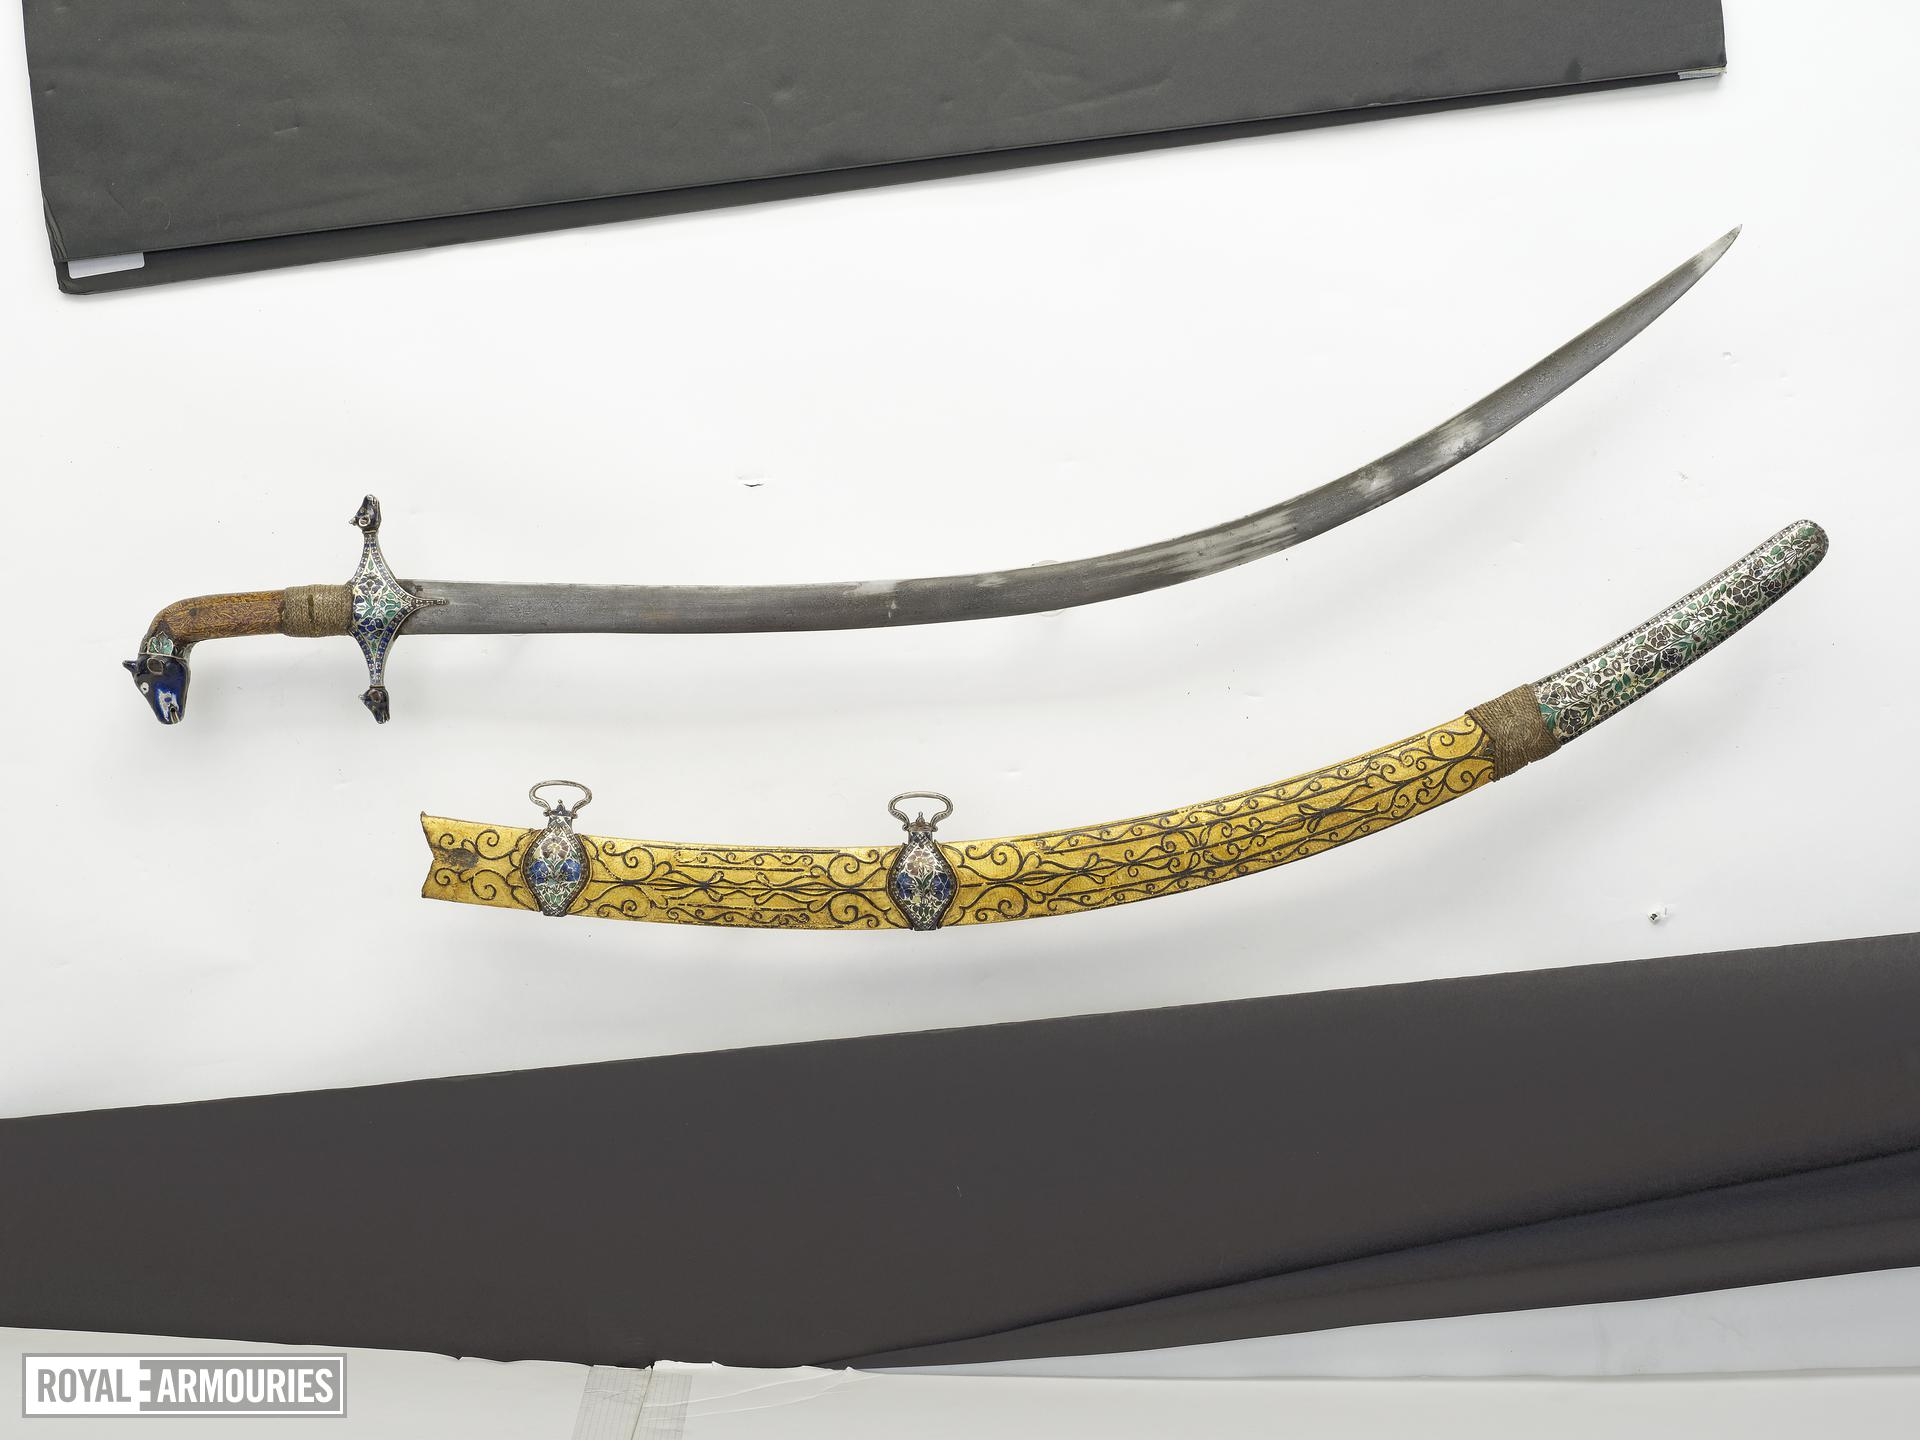 Sword (talwar) and scabbard